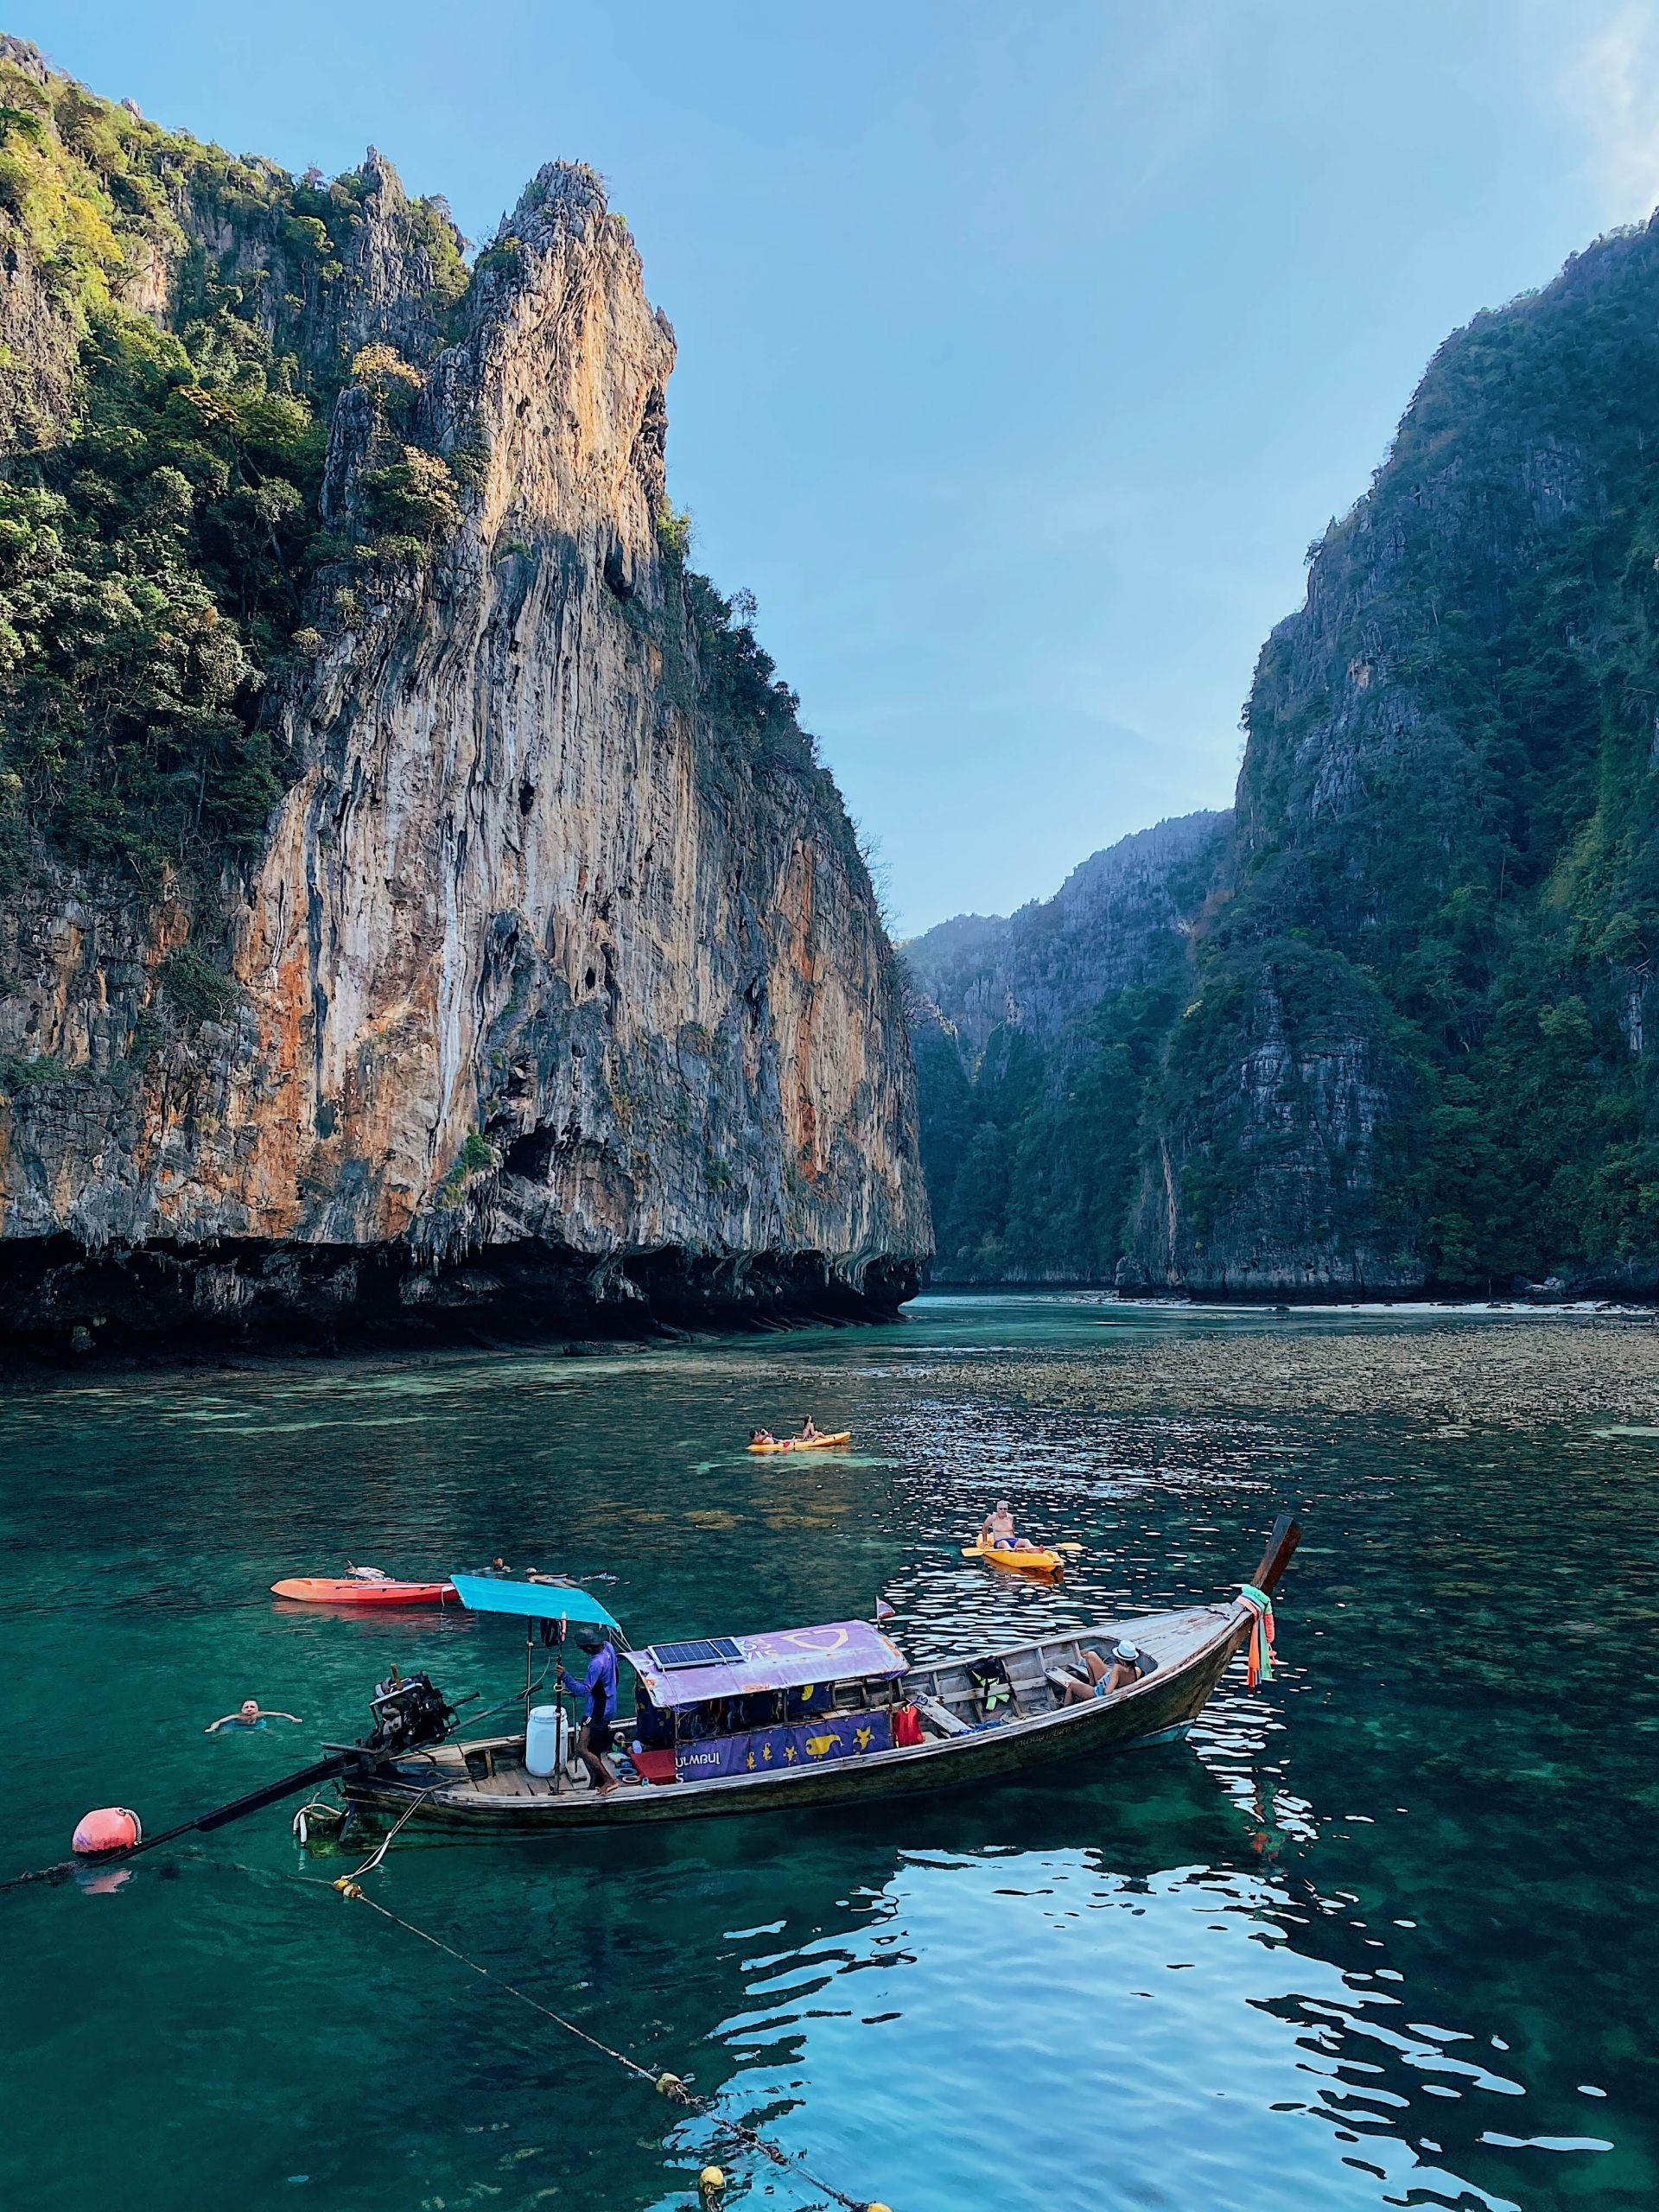 One week in Thailand island hopping itinerary